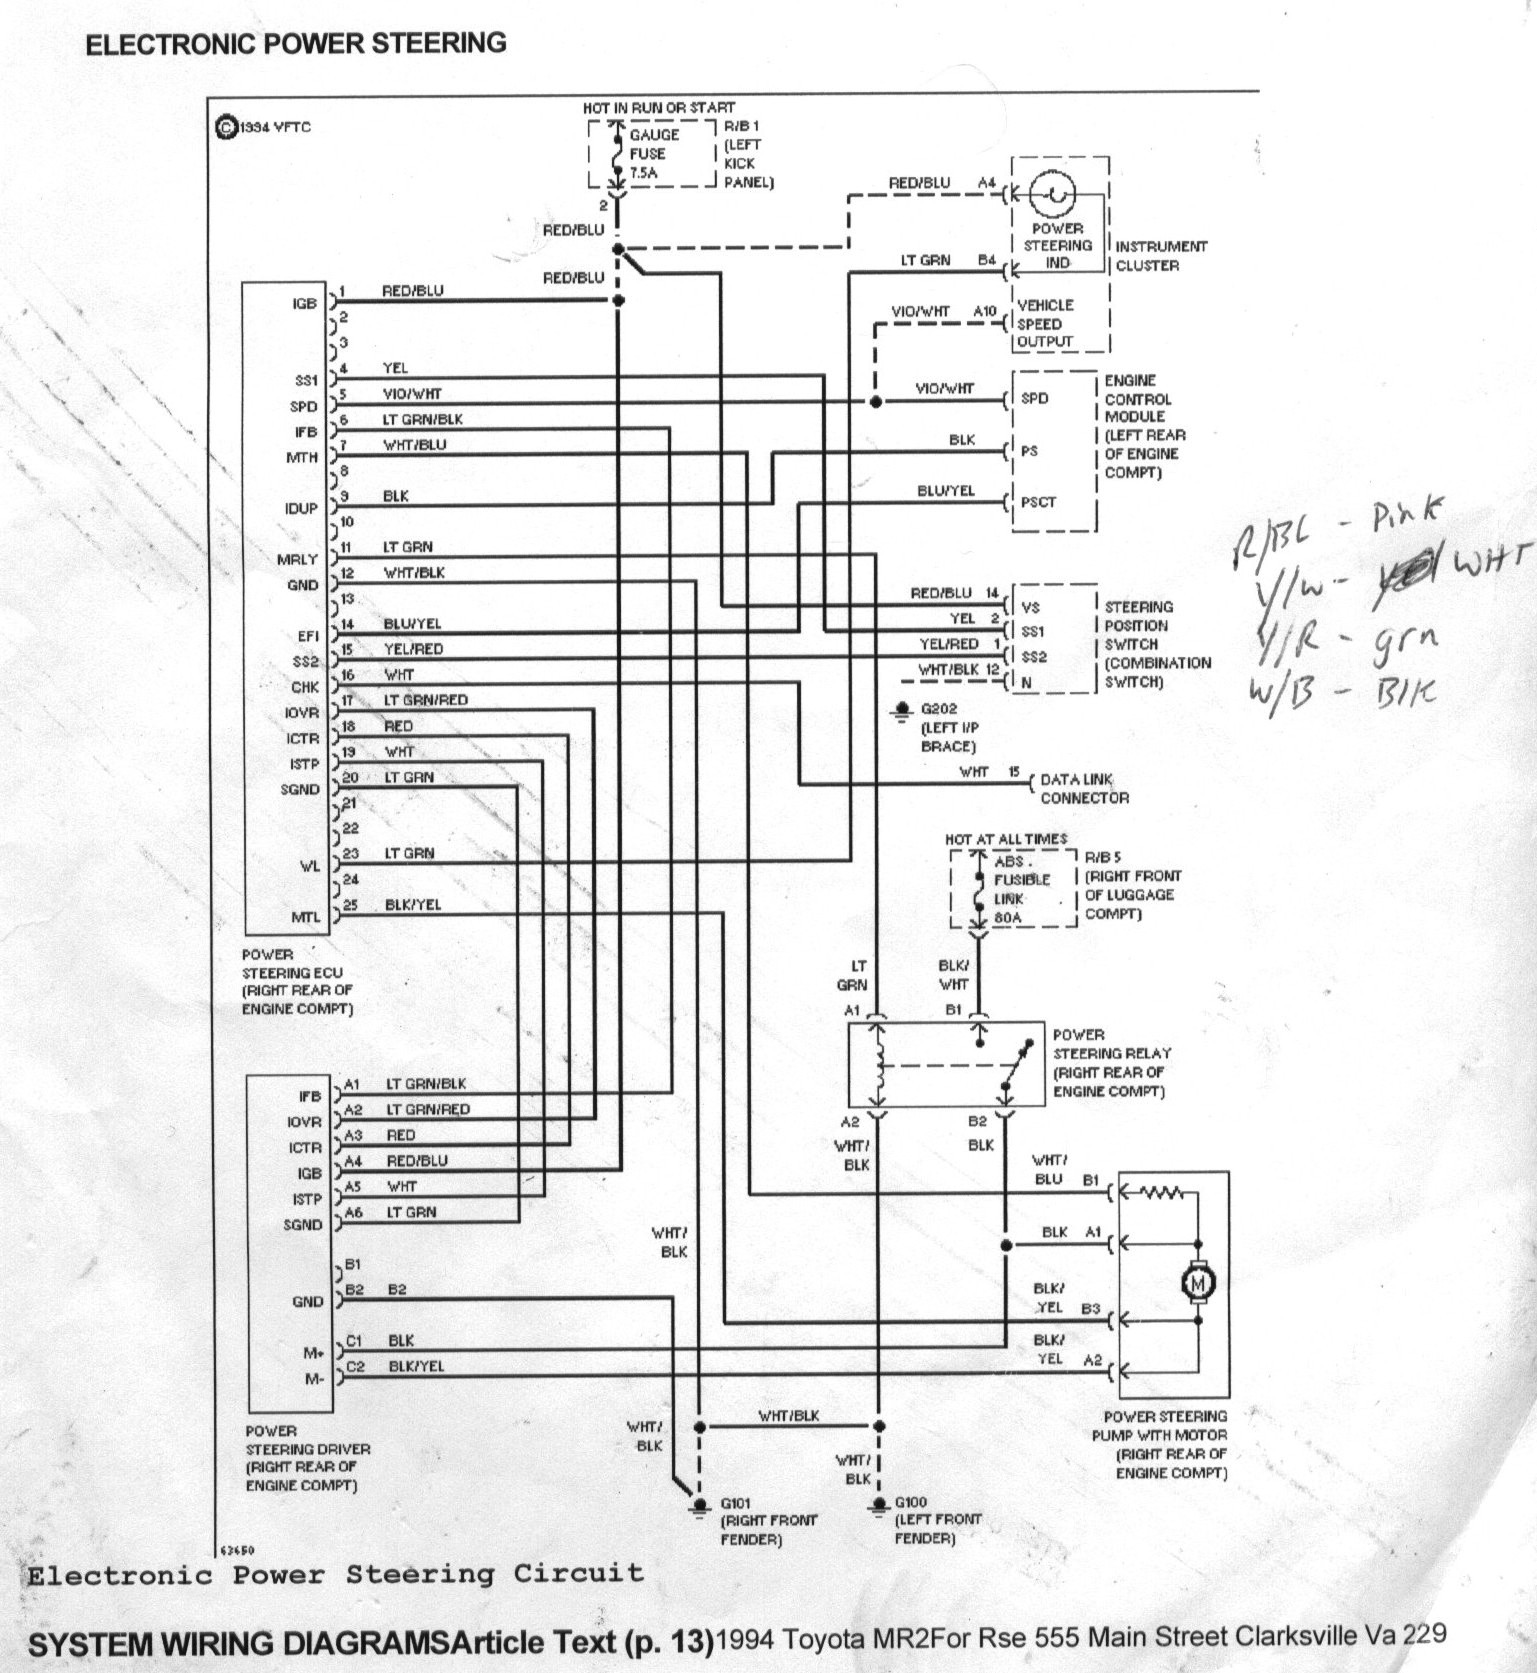 hight resolution of 1991 mr2 wiring diagram wiring diagram blog 1986 toyota mr2 wiring diagram toyota mr2 wiring diagram